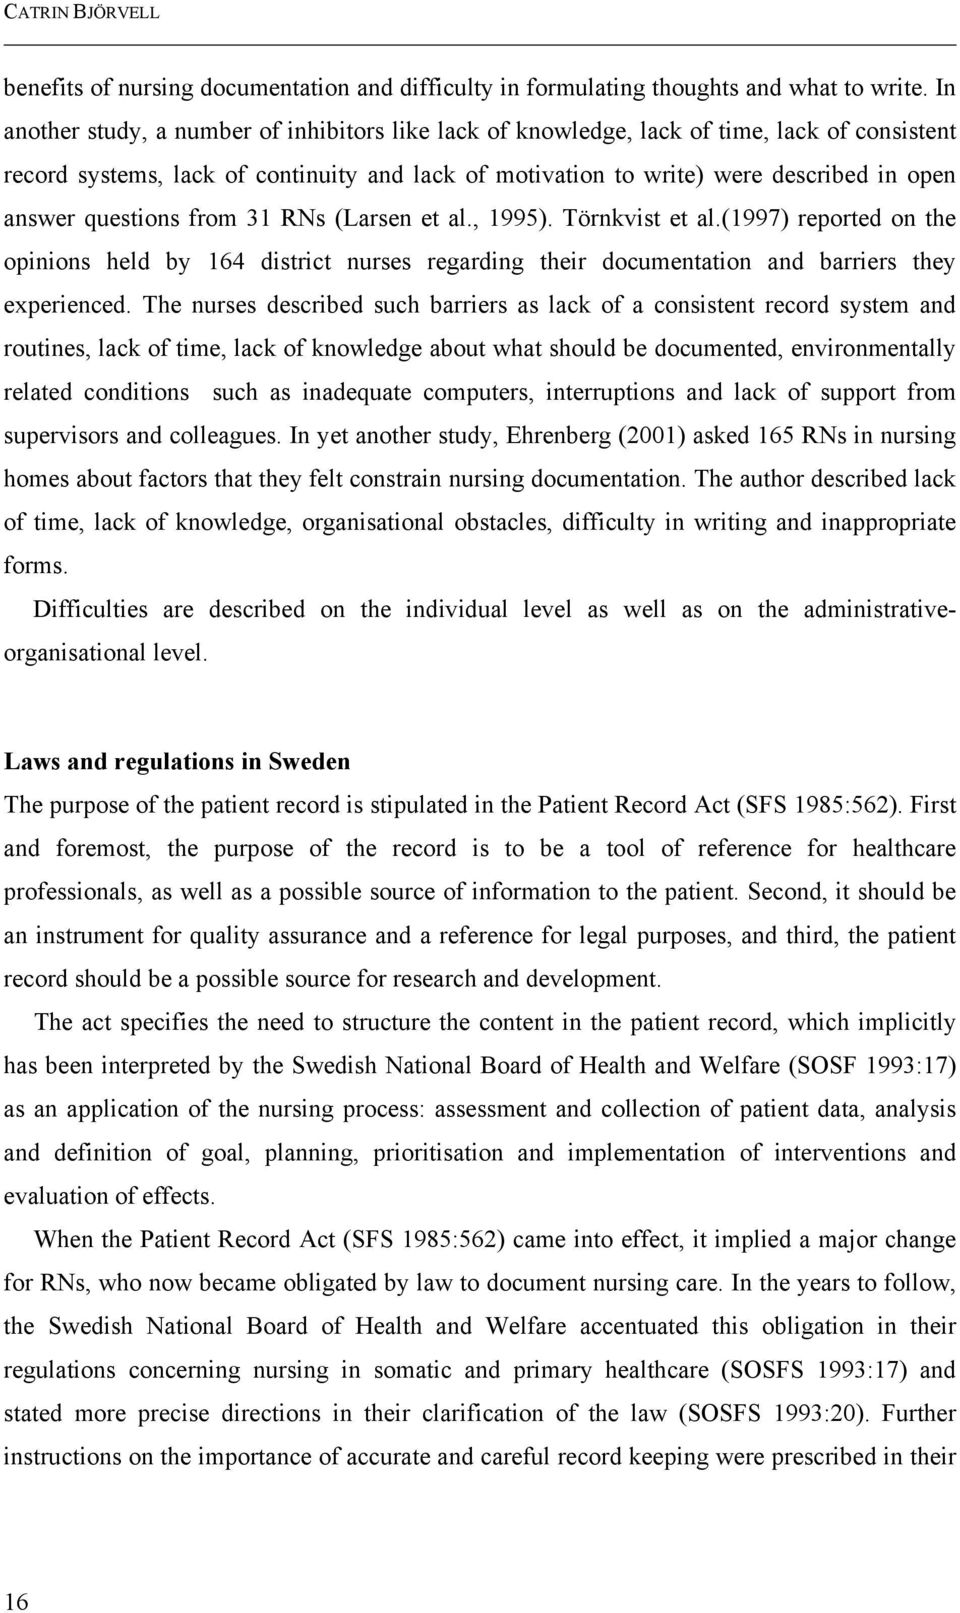 questions from 31 RNs (Larsen et al., 1995). Törnkvist et al.(1997) reported on the opinions held by 164 district nurses regarding their documentation and barriers they experienced.